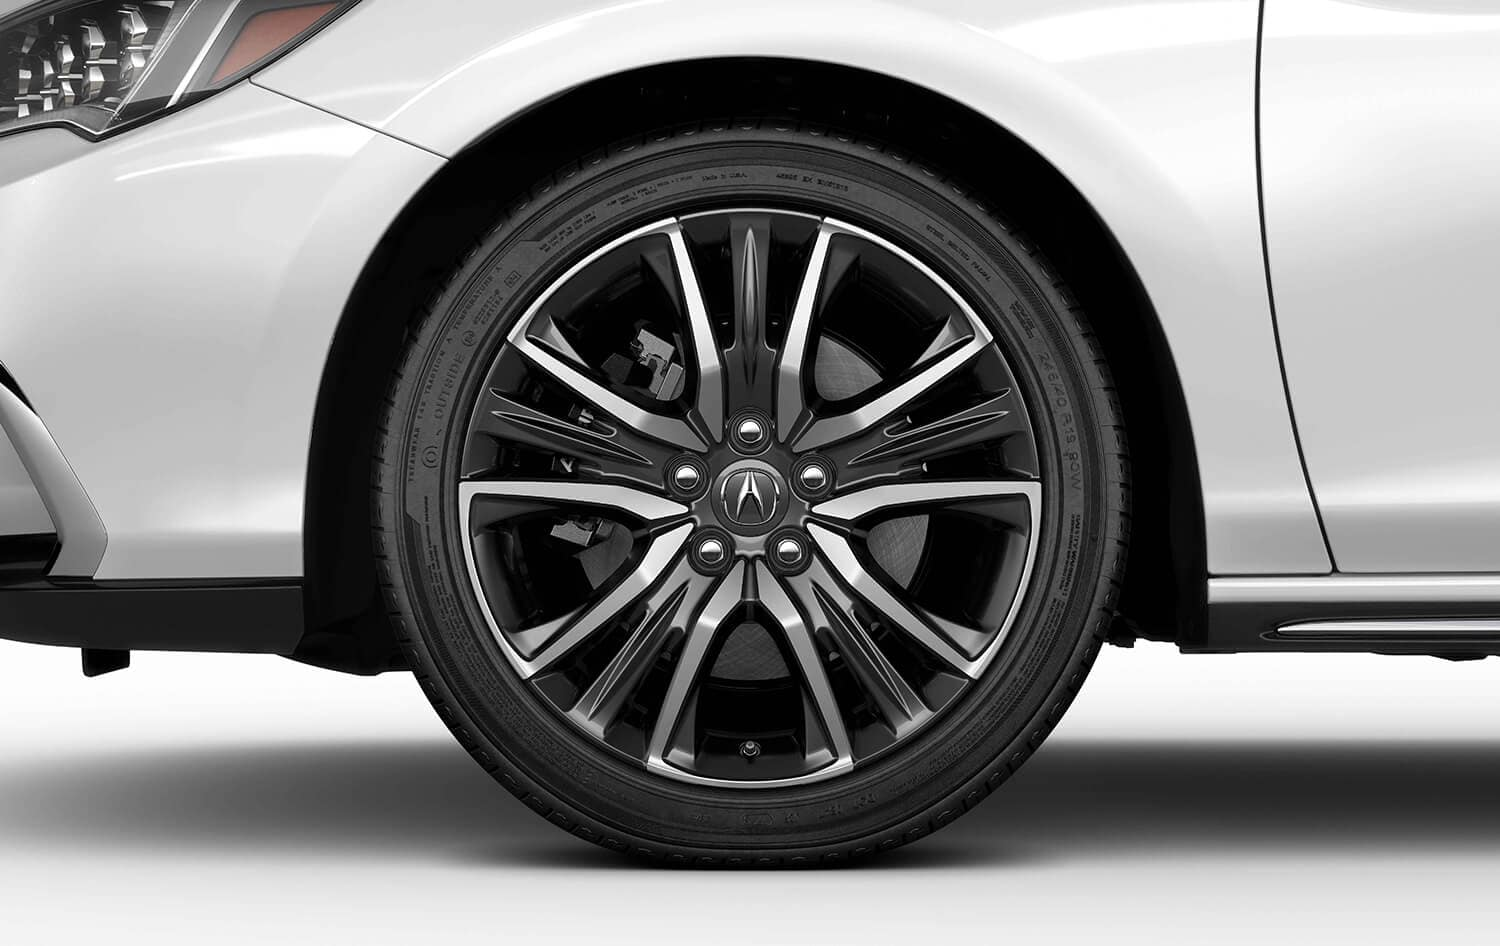 2019 Acura RLX Exterior Wheel Closeup